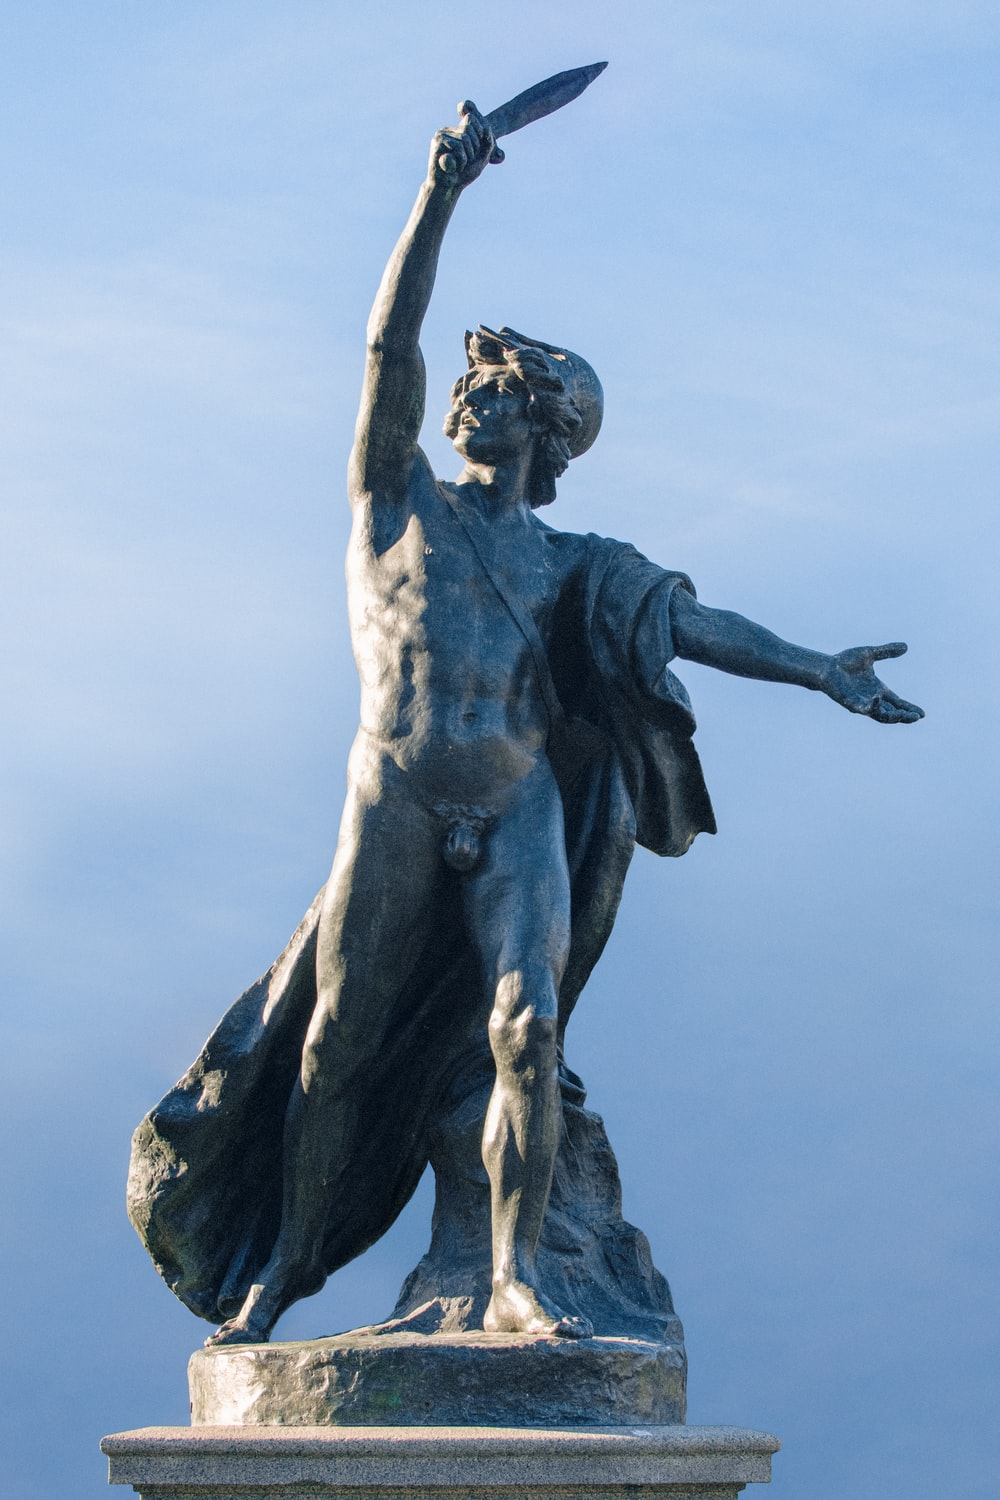 man with wings statue under blue sky during daytime